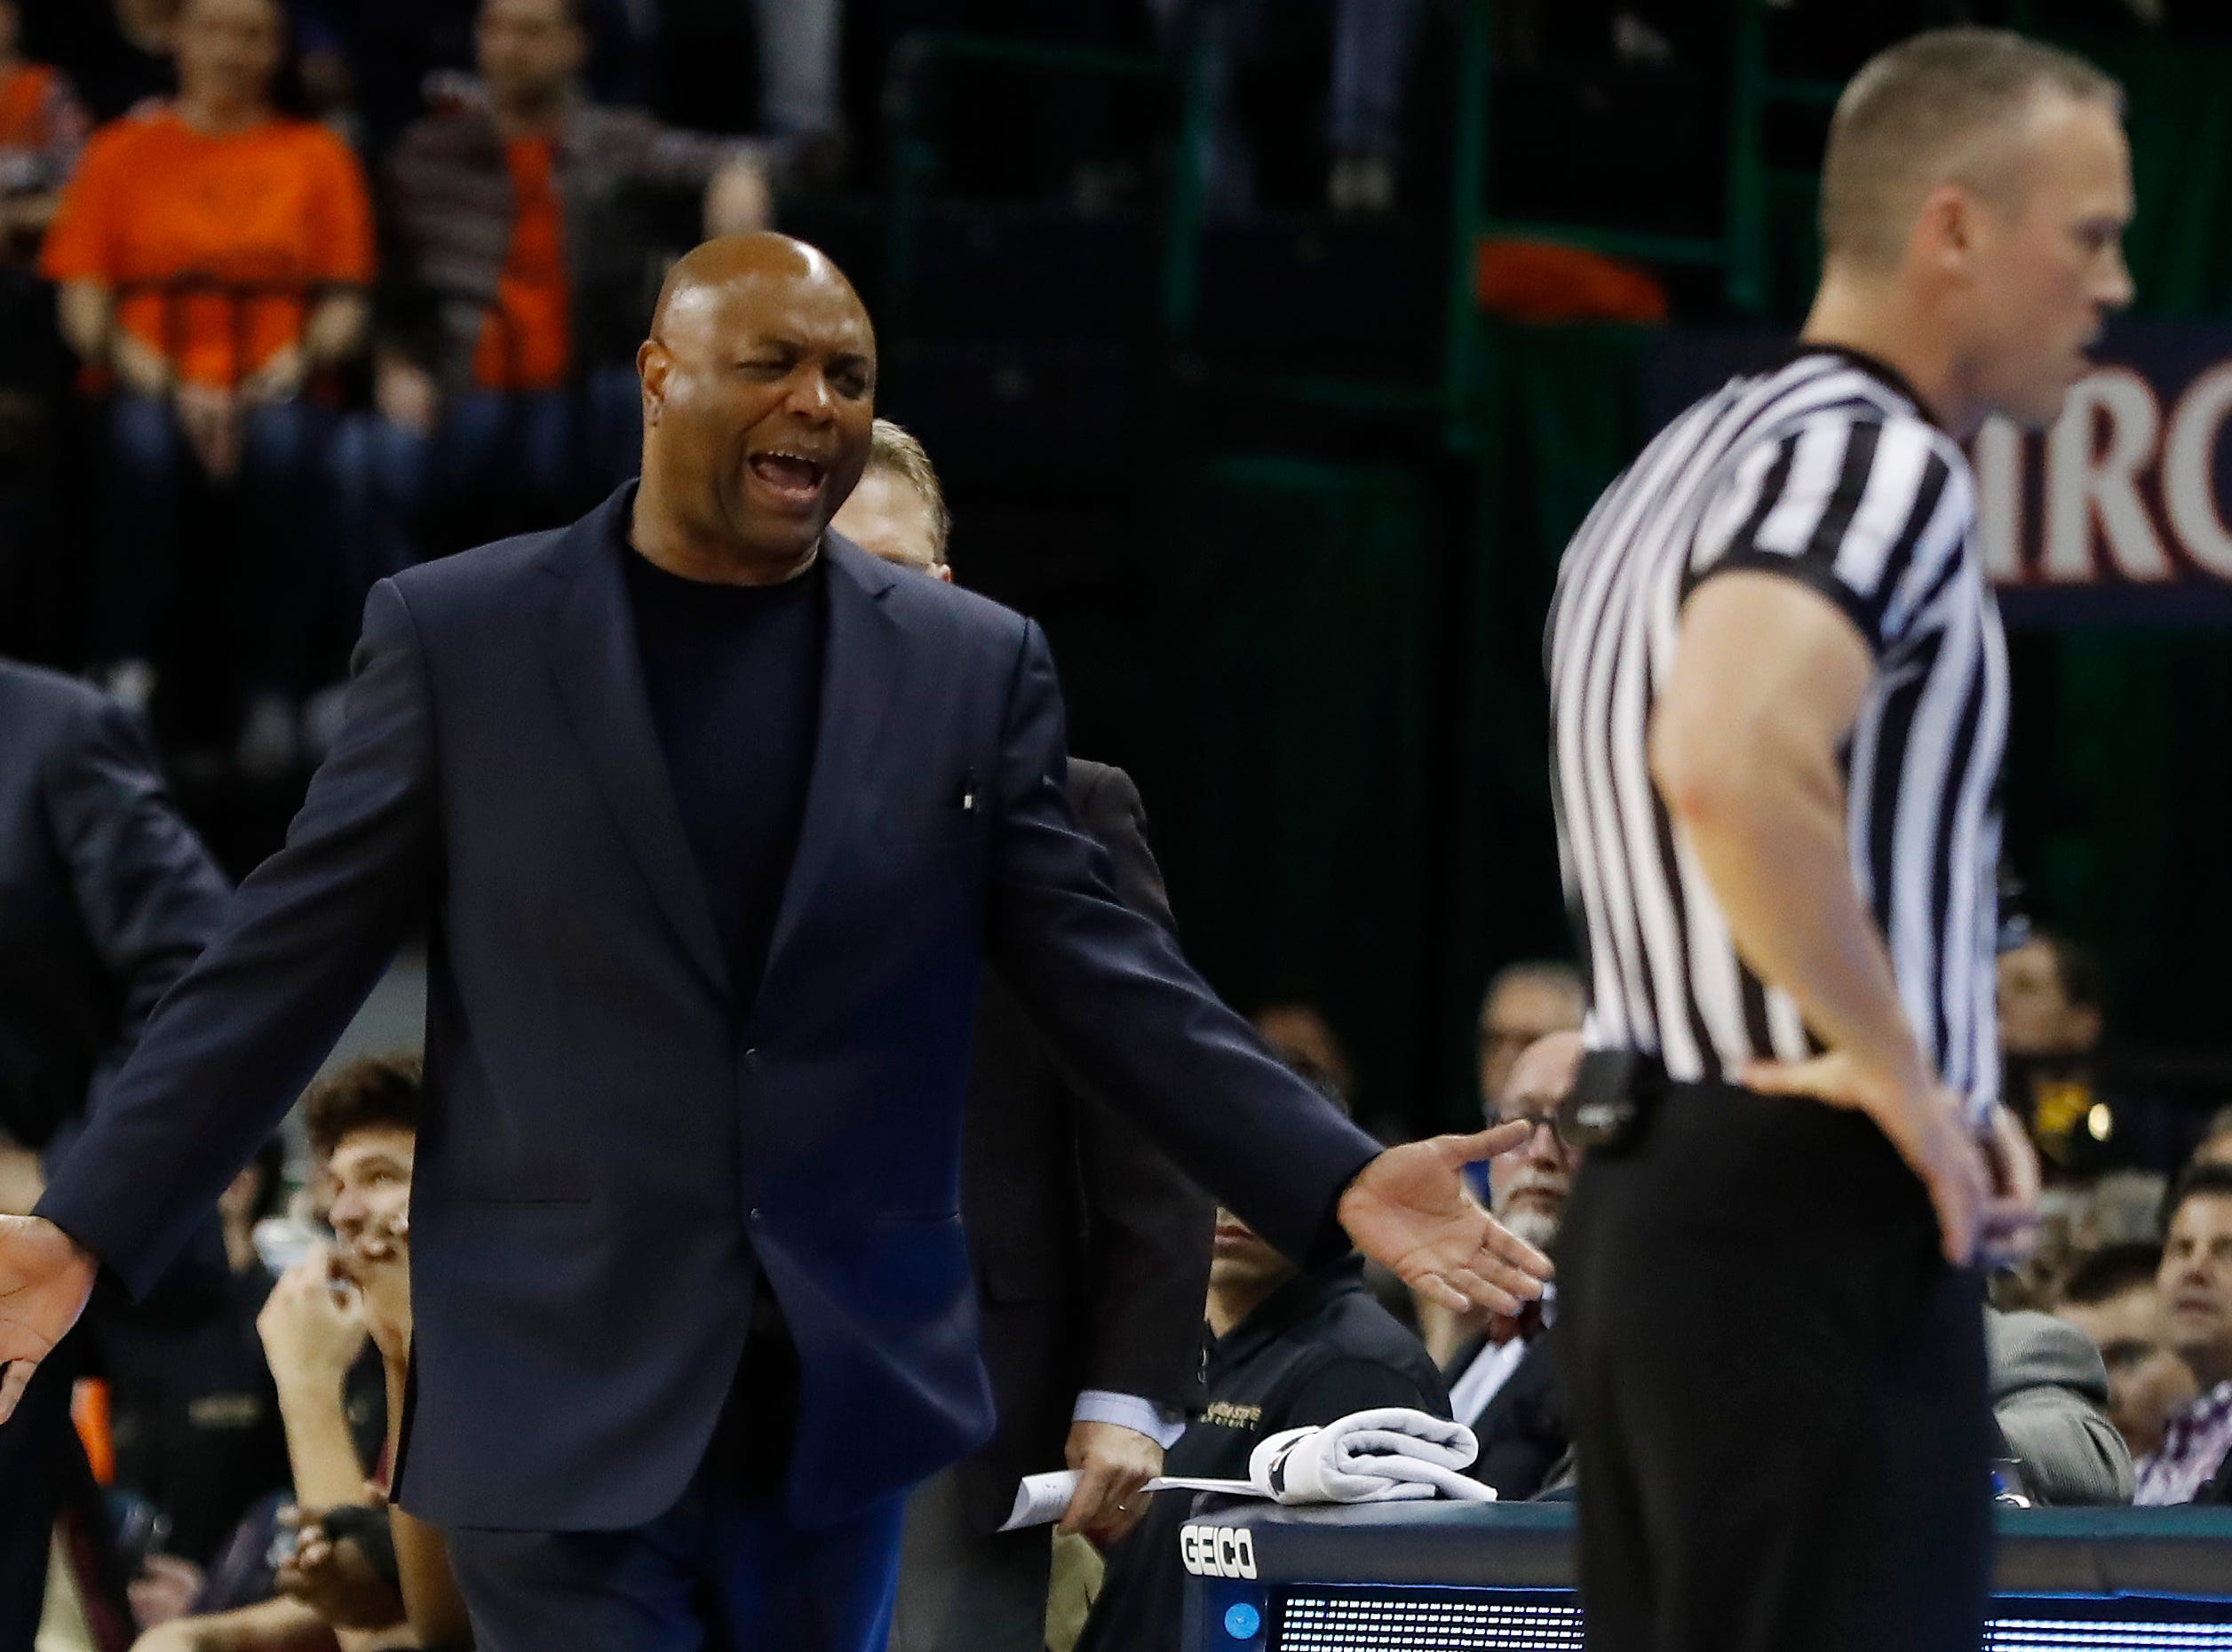 Jan 5, 2019; Charlottesville, VA, USA; Florida State Seminoles head coach Leonard Hamilton gestures to a referee after a foul call against the Virginia Cavaliers in the first half at John Paul Jones Arena. Mandatory Credit: Geoff Burke-USA TODAY Sports